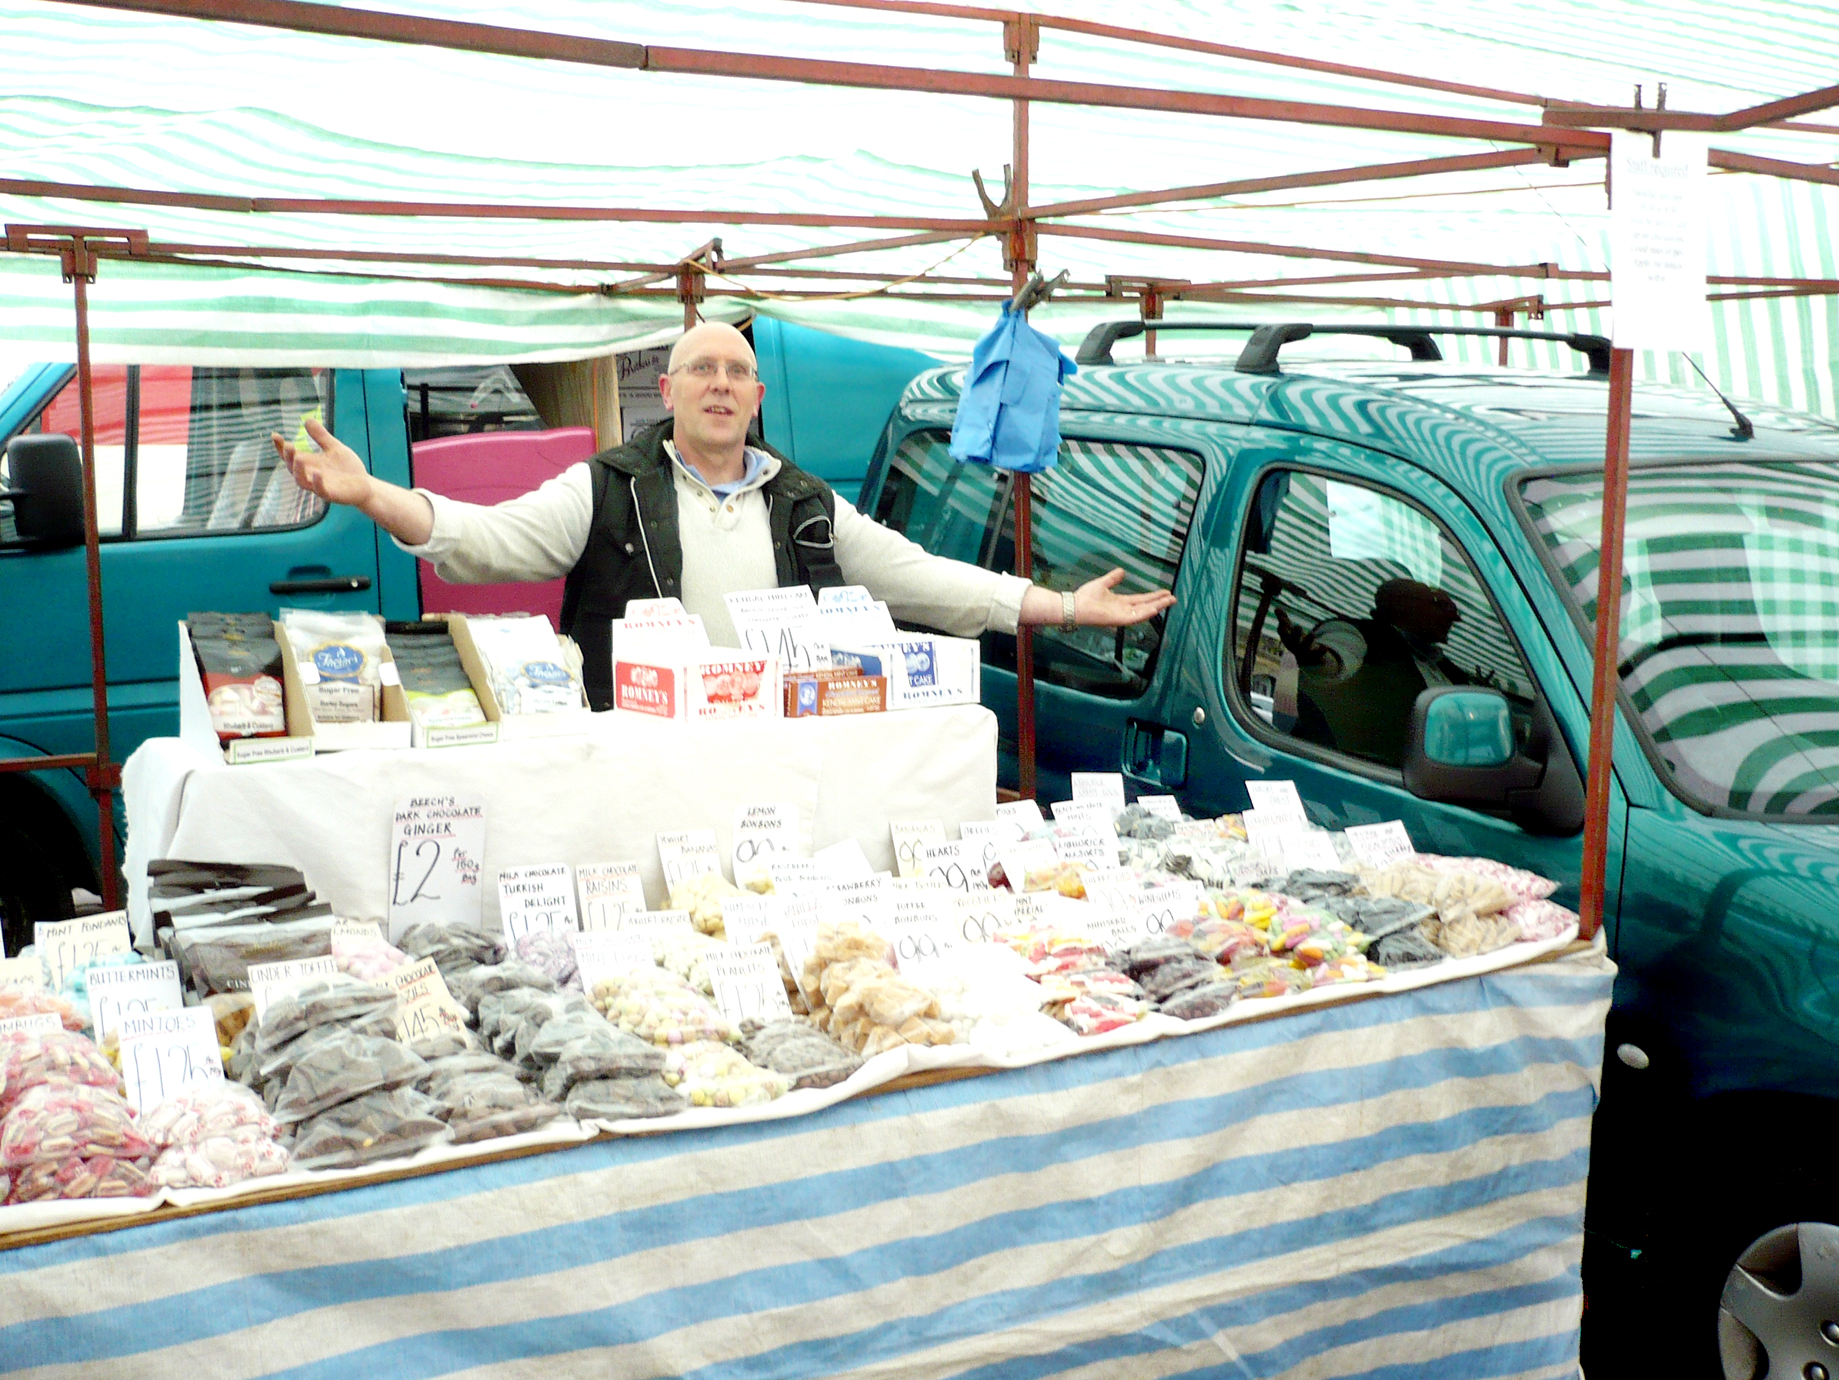 """THIS SHOWS HOW THINGS ARE NOT WORKING"": Skipton High Street trader John Louch, who had to put up his stall around a parked van."